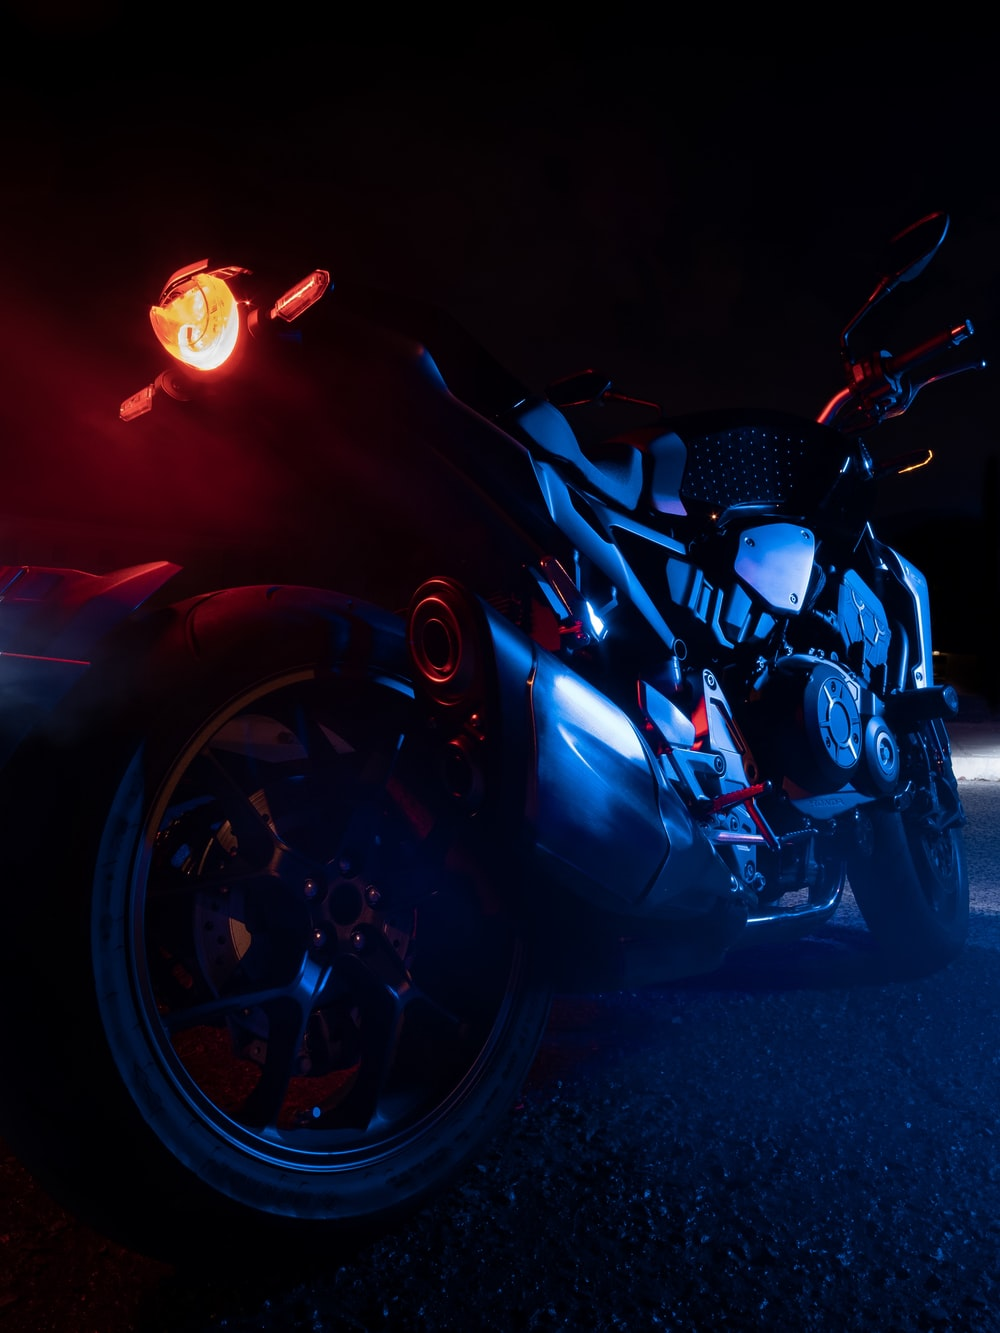 low-light photography of motorcycle